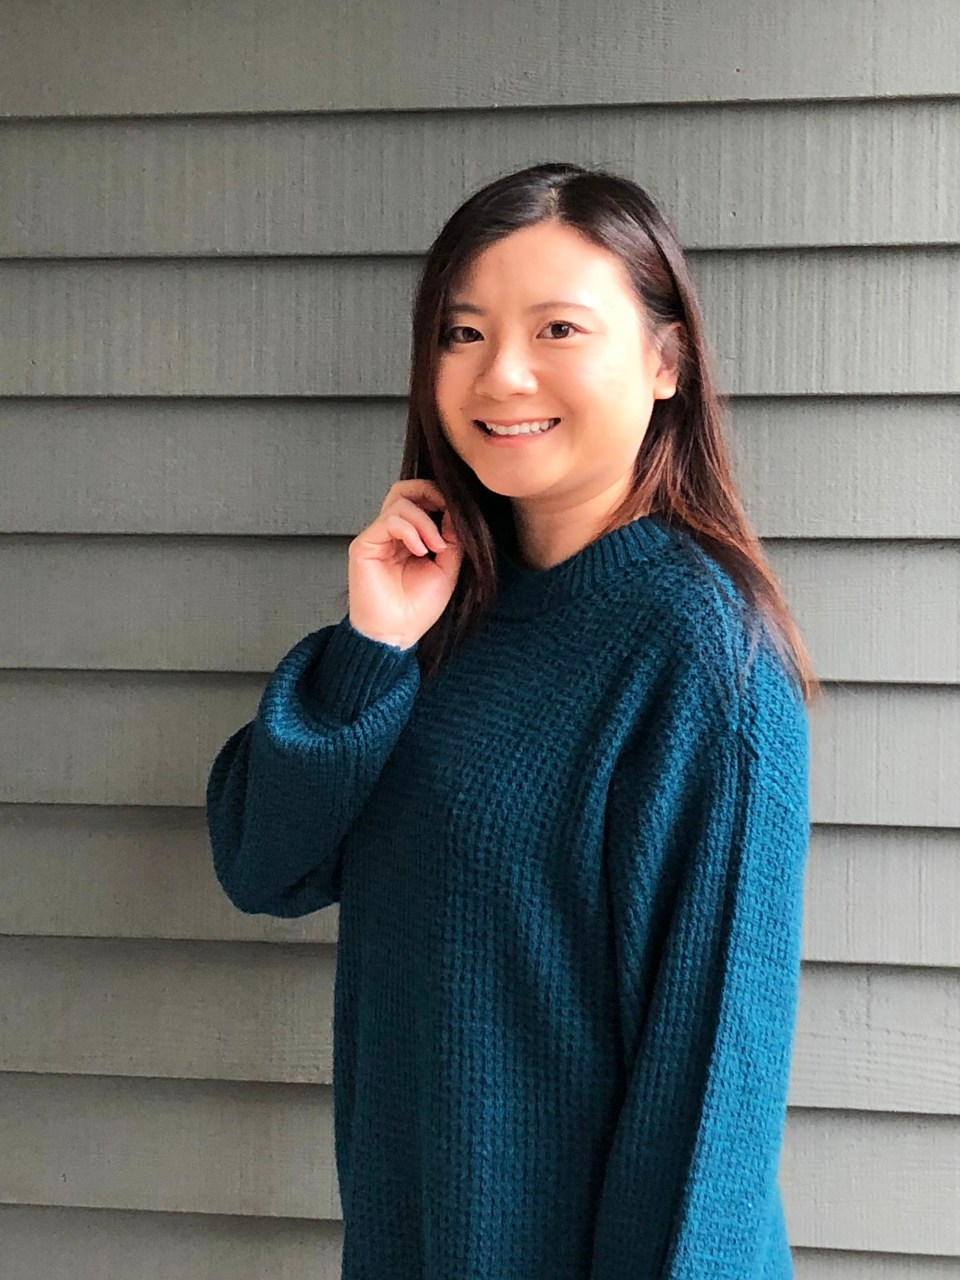 Teal Cloudspun Sweater 2